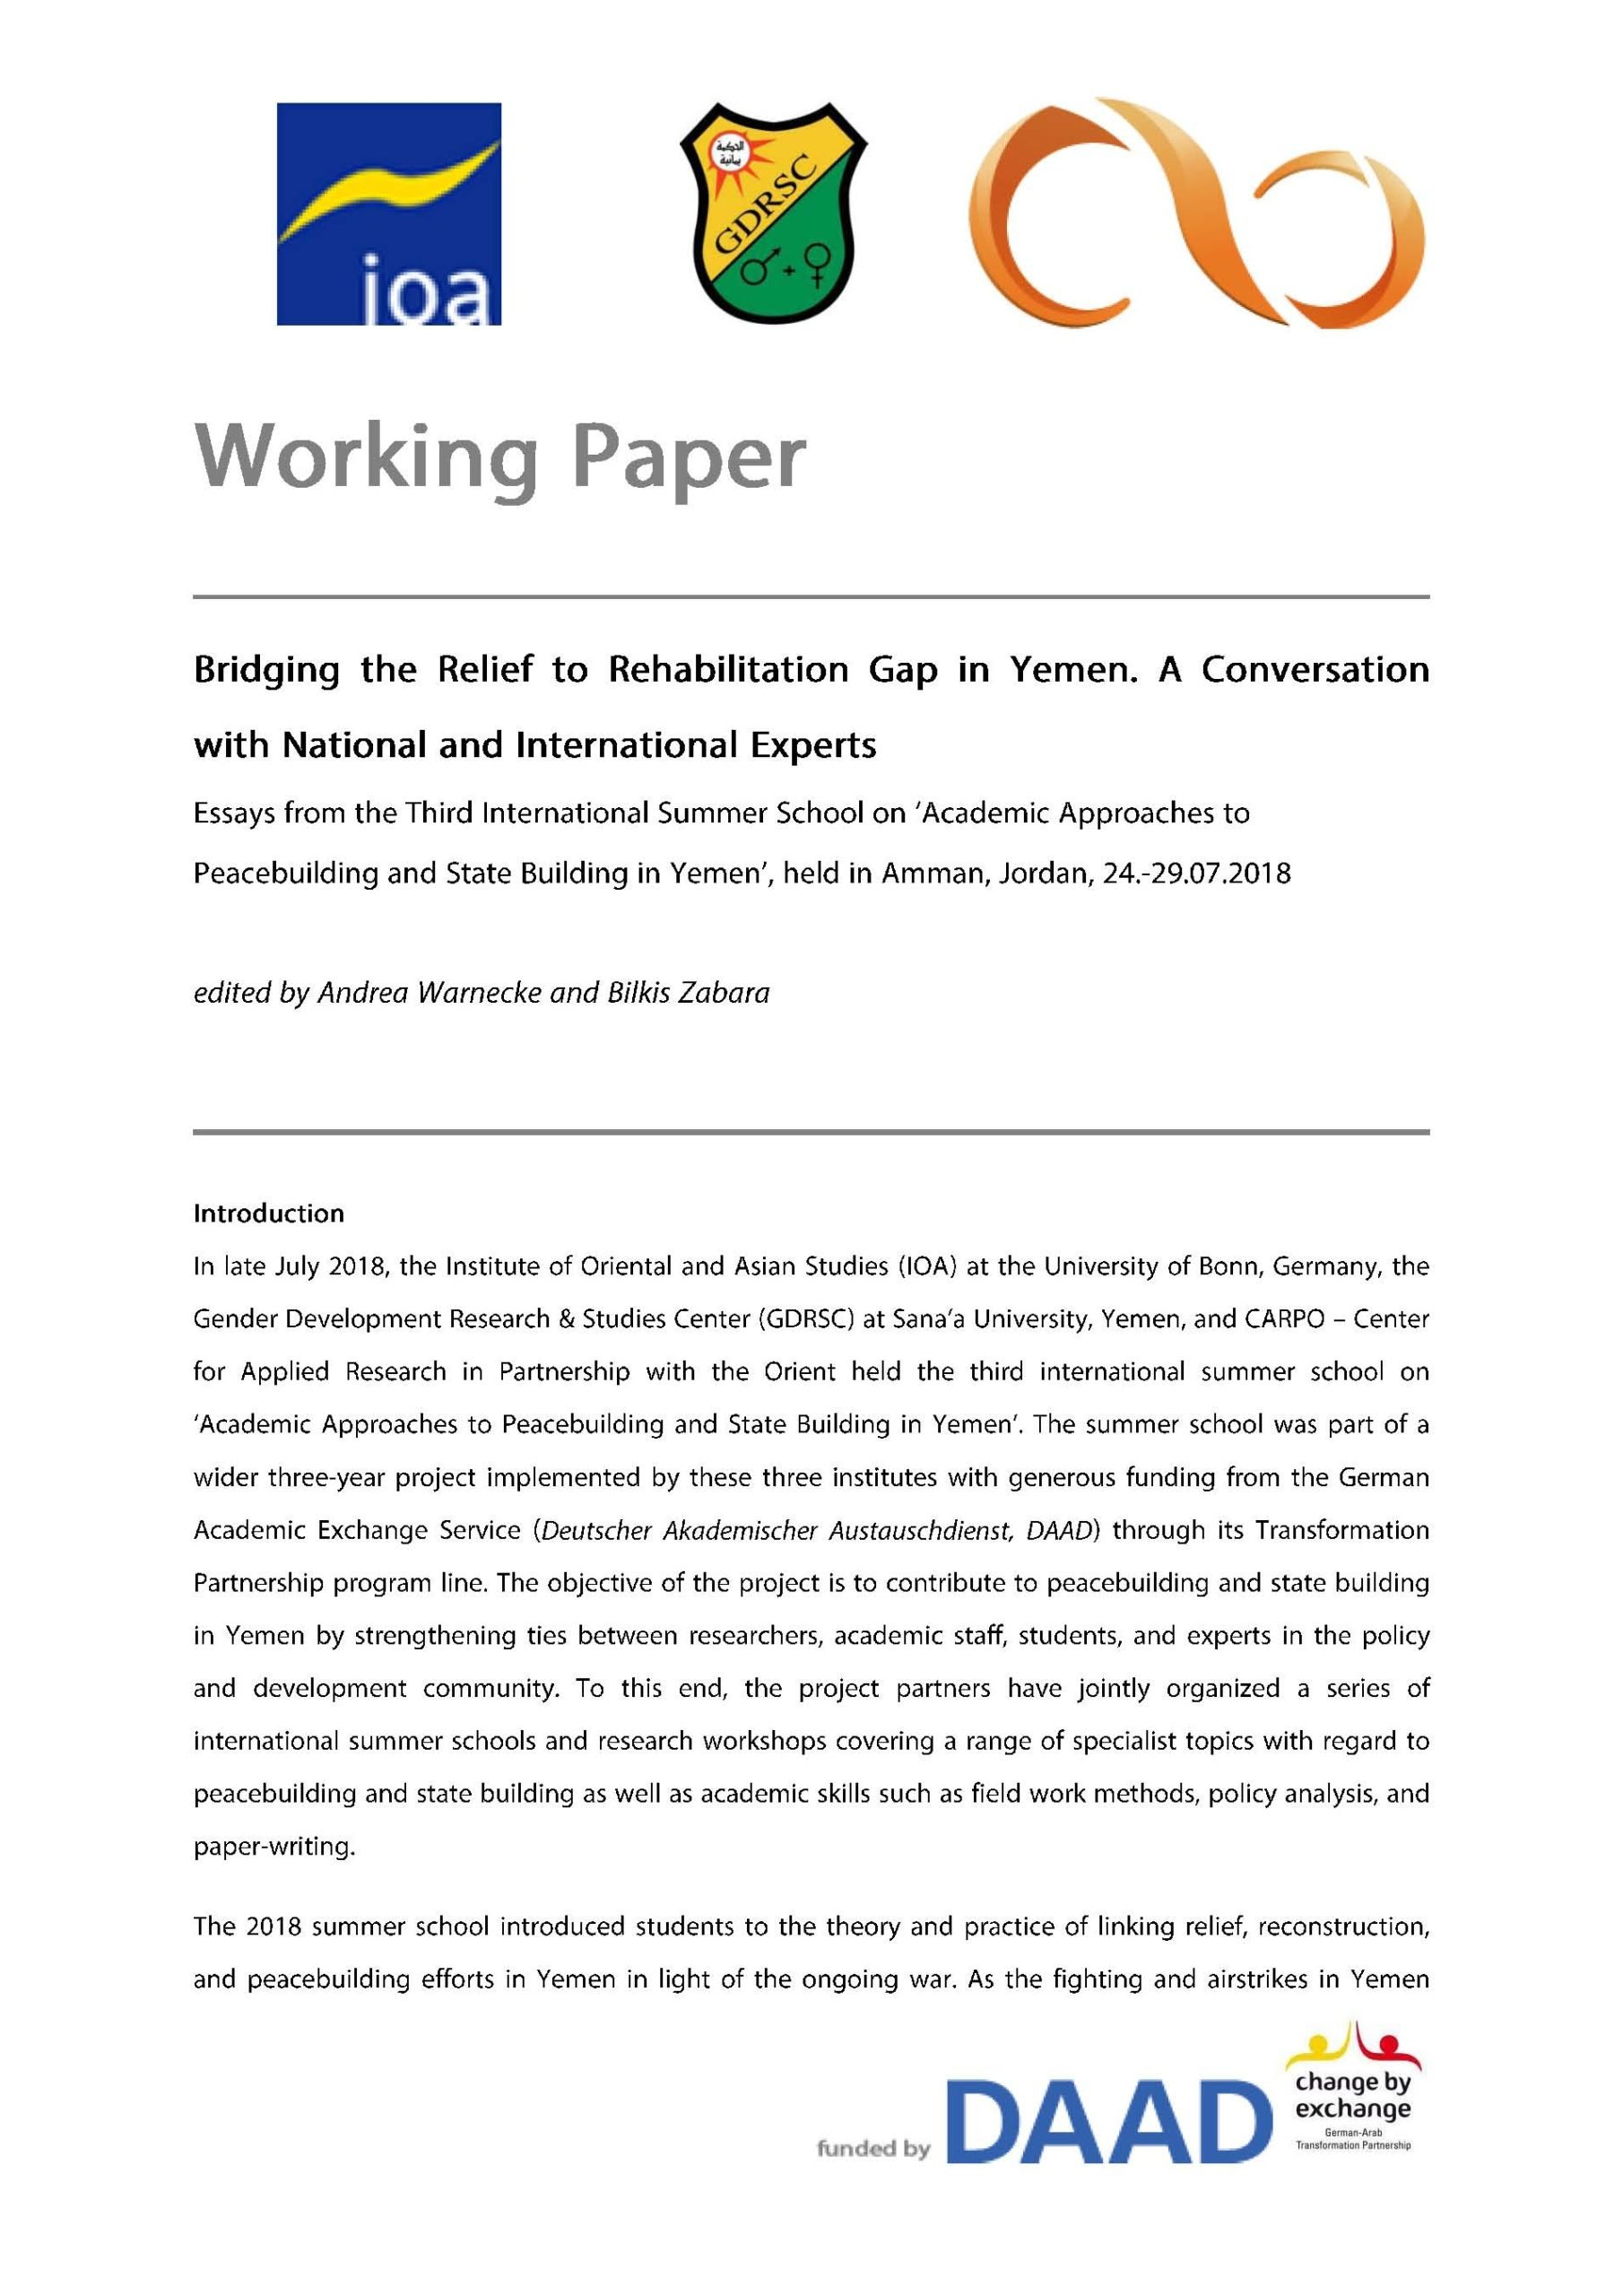 Working Paper: Bridging the Relief to Rehabilitation Gap in Yemen. A Conversation with National and International Experts